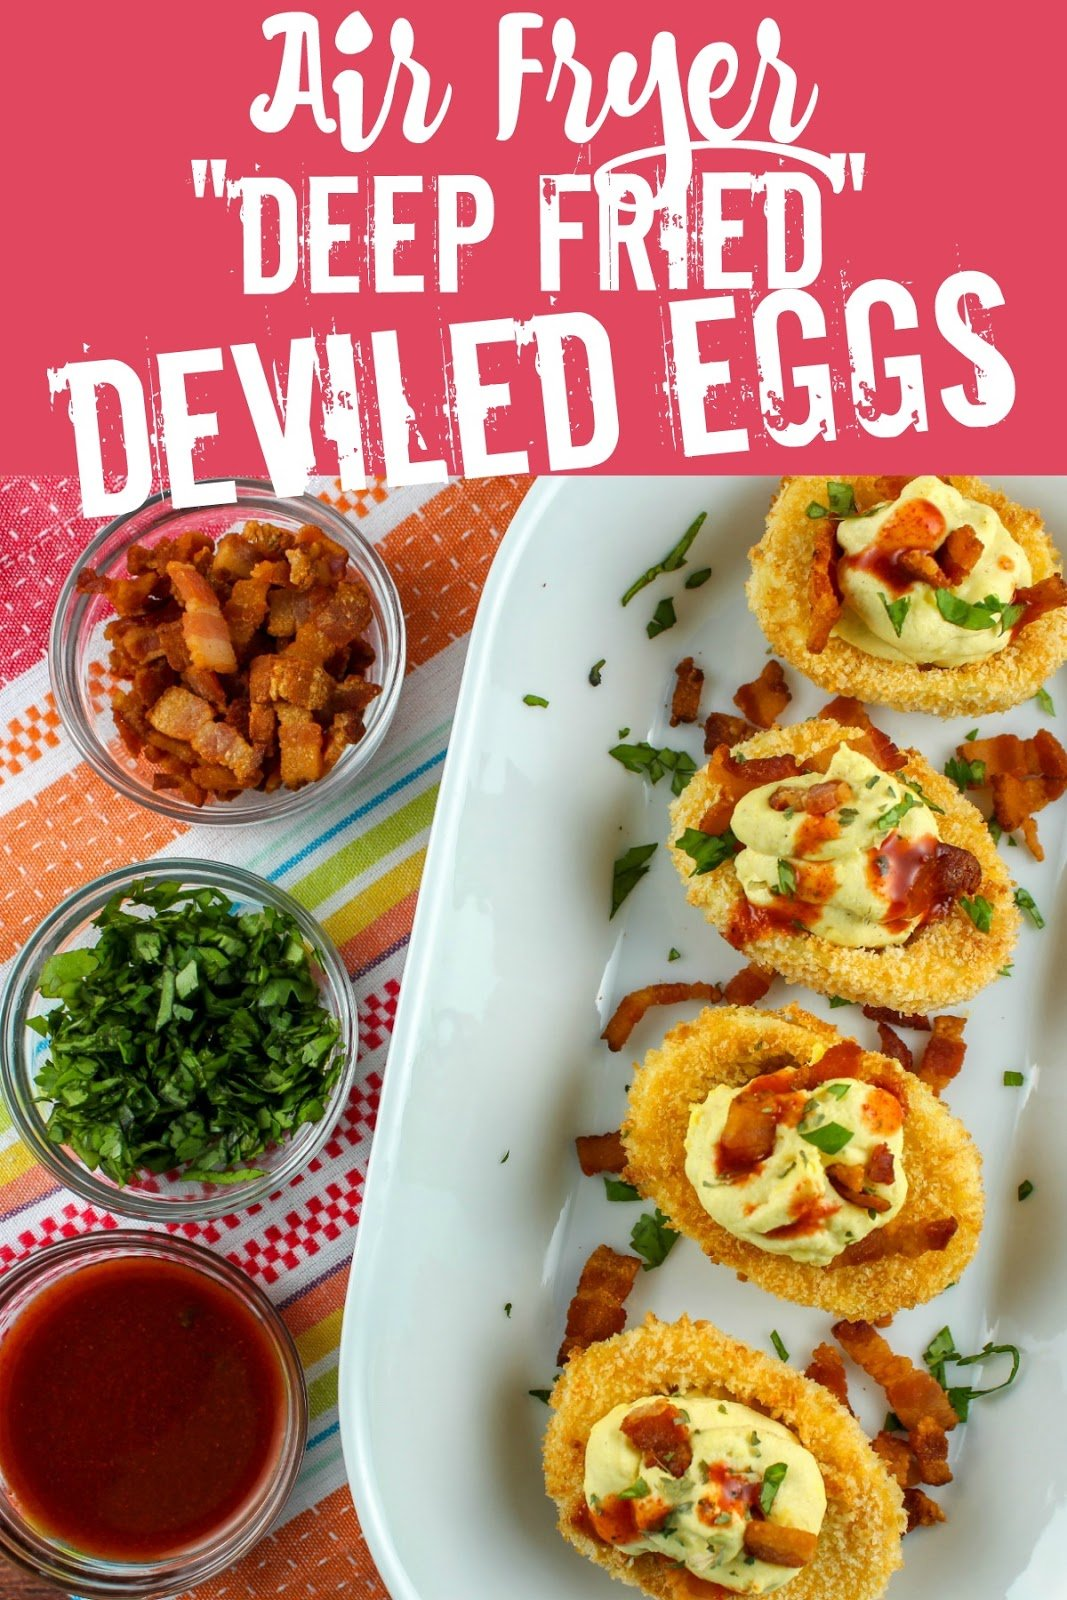 """On a trip to Atlanta, I had Deep Fried Deviled Eggs topped with bacon and hot sauce. I immediately thought - I can make these but I'm going to make them in my air fryer! Air Fried """"Deep Fried"""" Deviled eggs are healthier even better than the originals! via @foodhussy"""